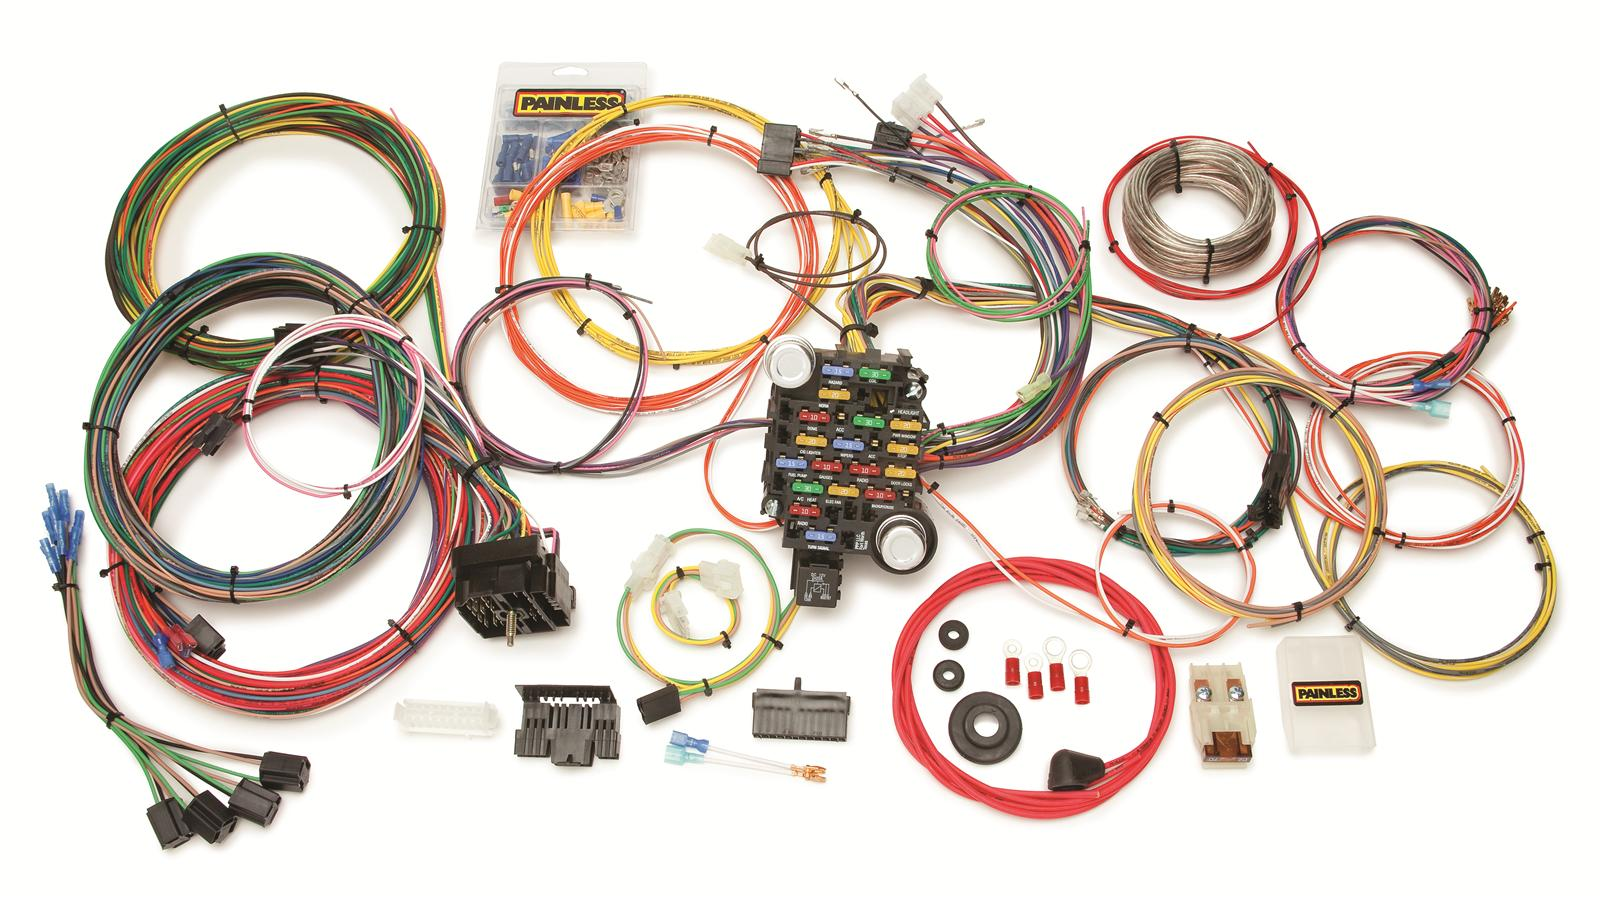 prf 10205_xl painless performance gmc chevy truck harnesses 10205 free gm truck wiring harness at bayanpartner.co